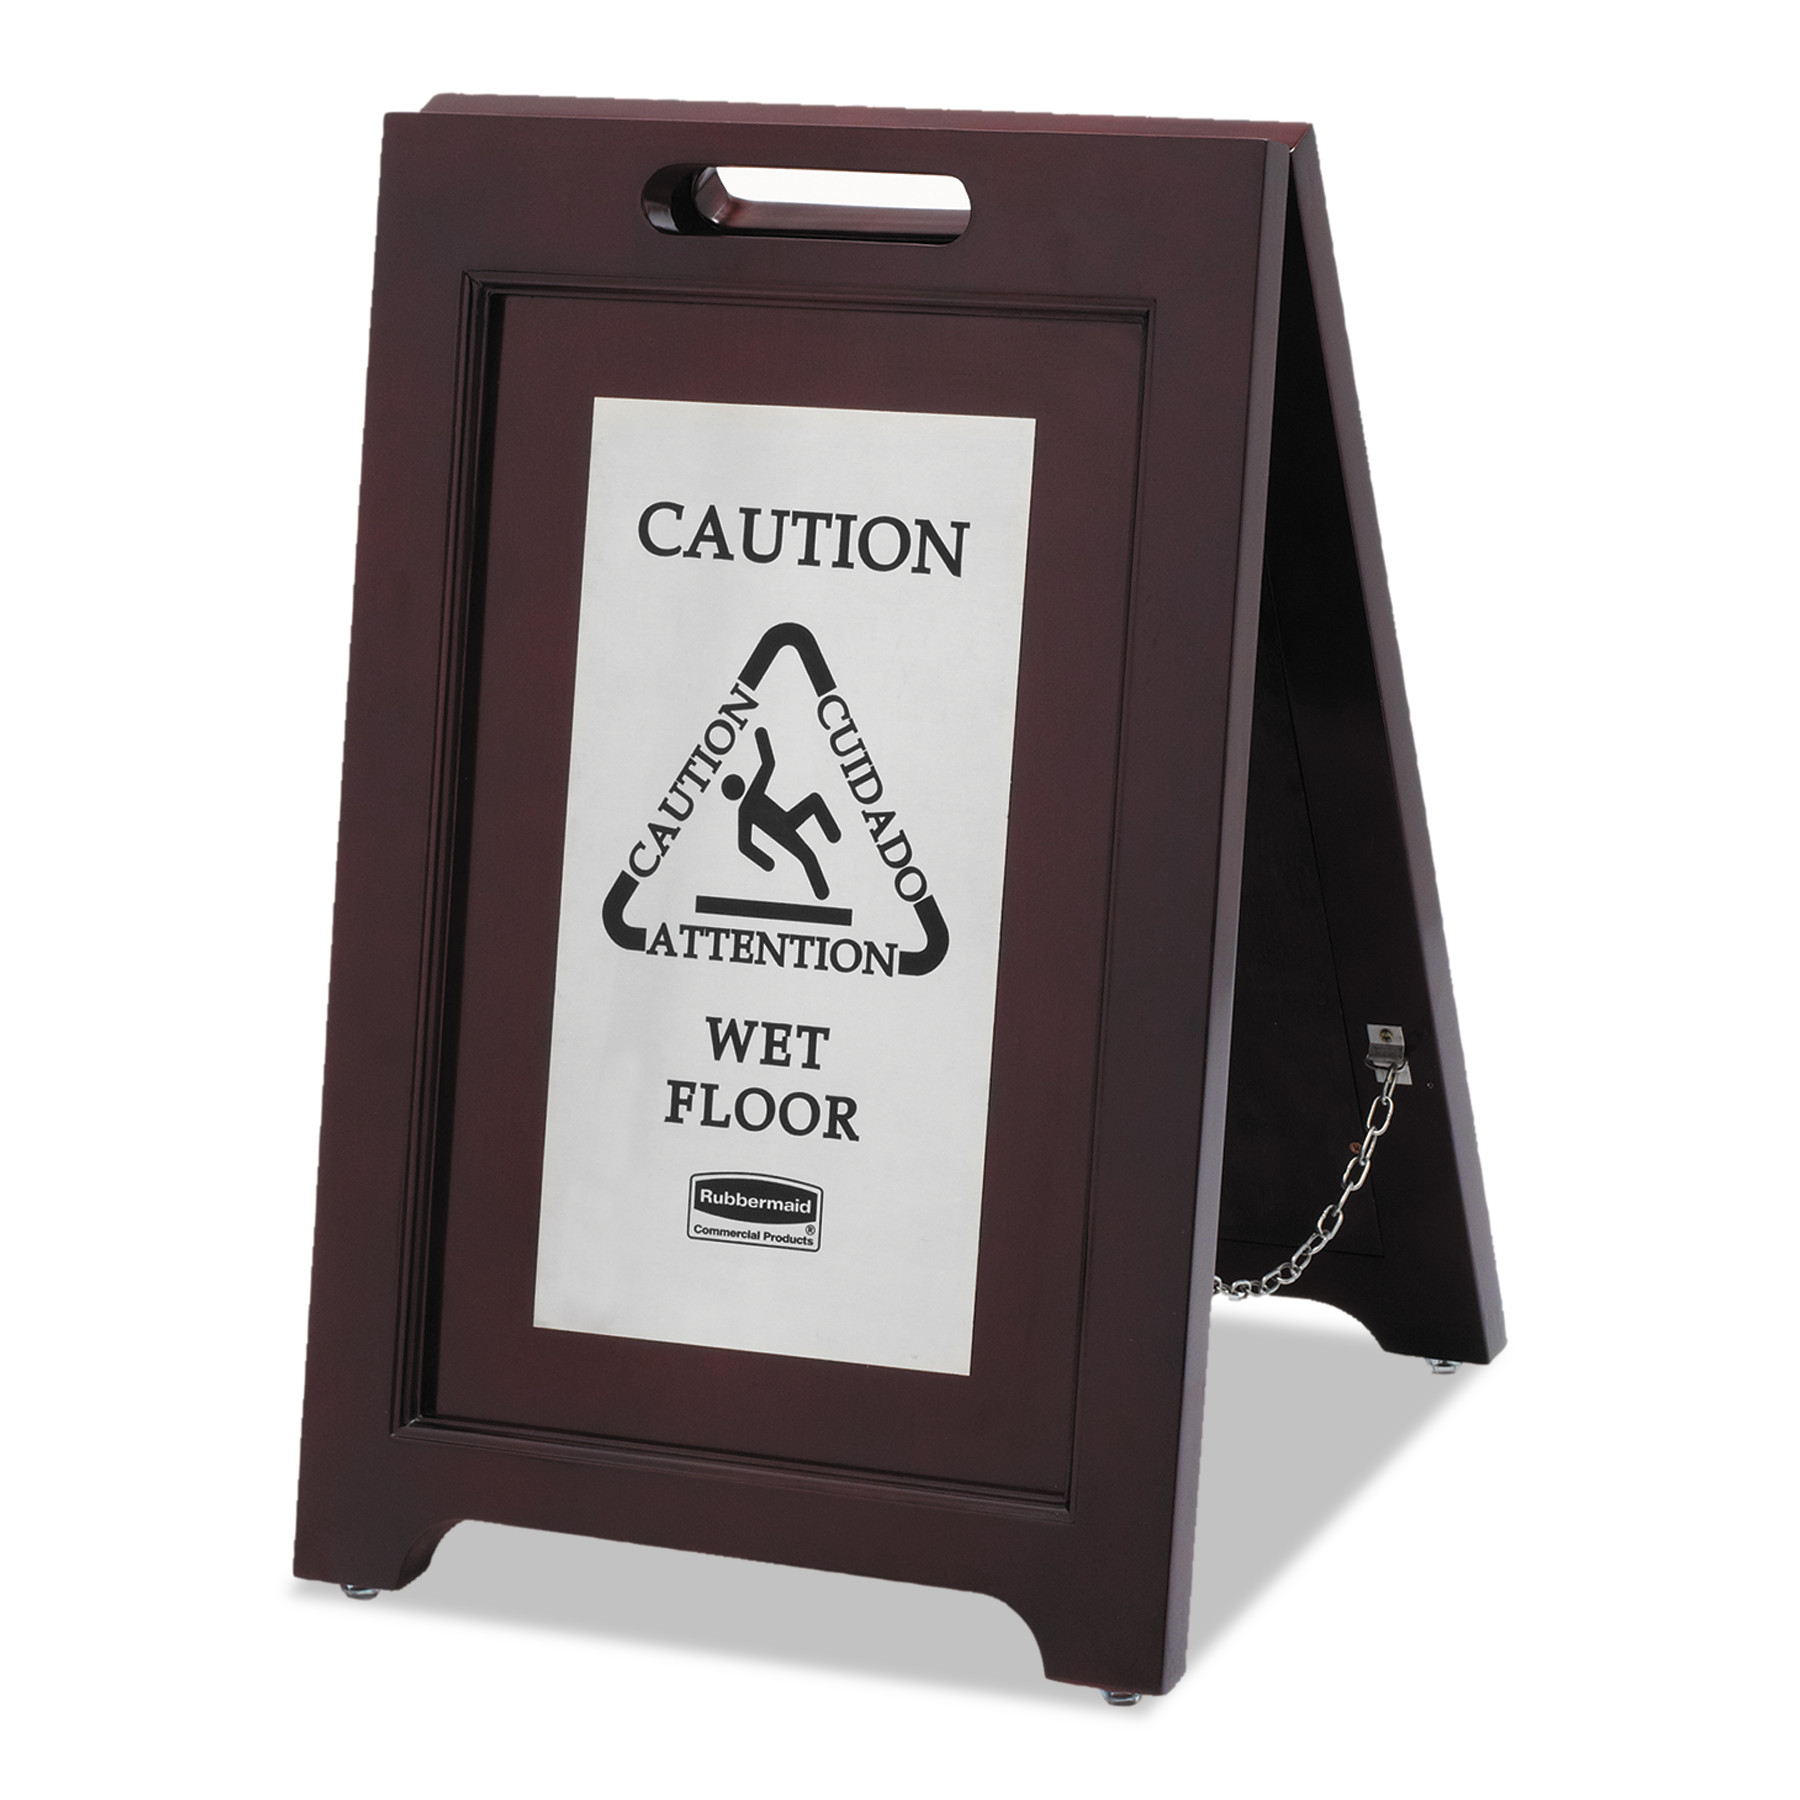 Rubbermaid Commercial Executive 2-Sided Multi-Lingual Caution Sign, Brown Stainless... by RUBBERMAID COMMERCIAL PROD.